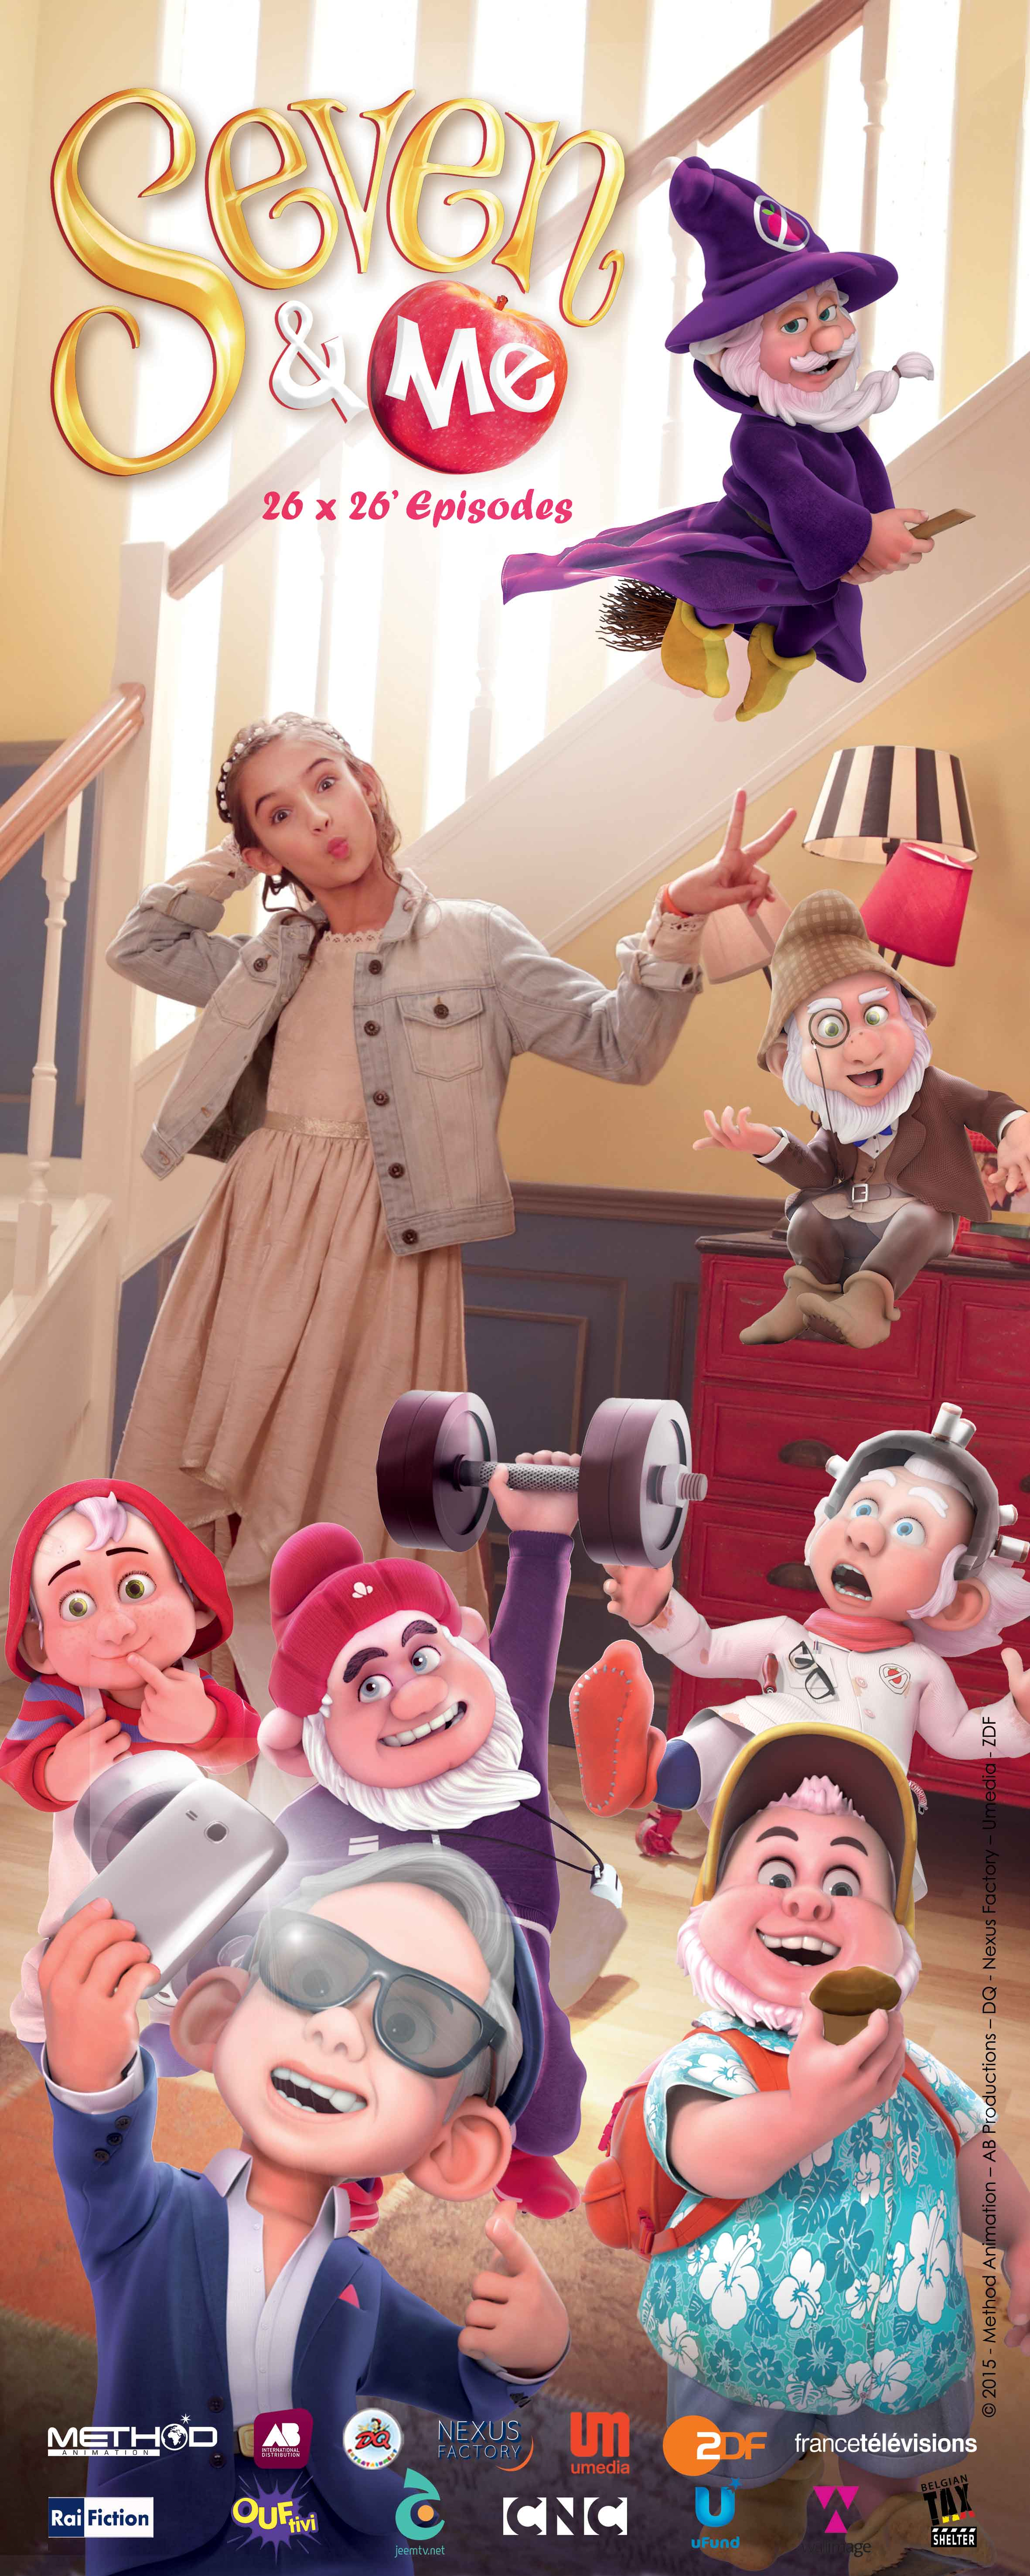 Sept Nains et Moi ON kids and family, ON Animation Studios, ON Entertainment, Method Animation